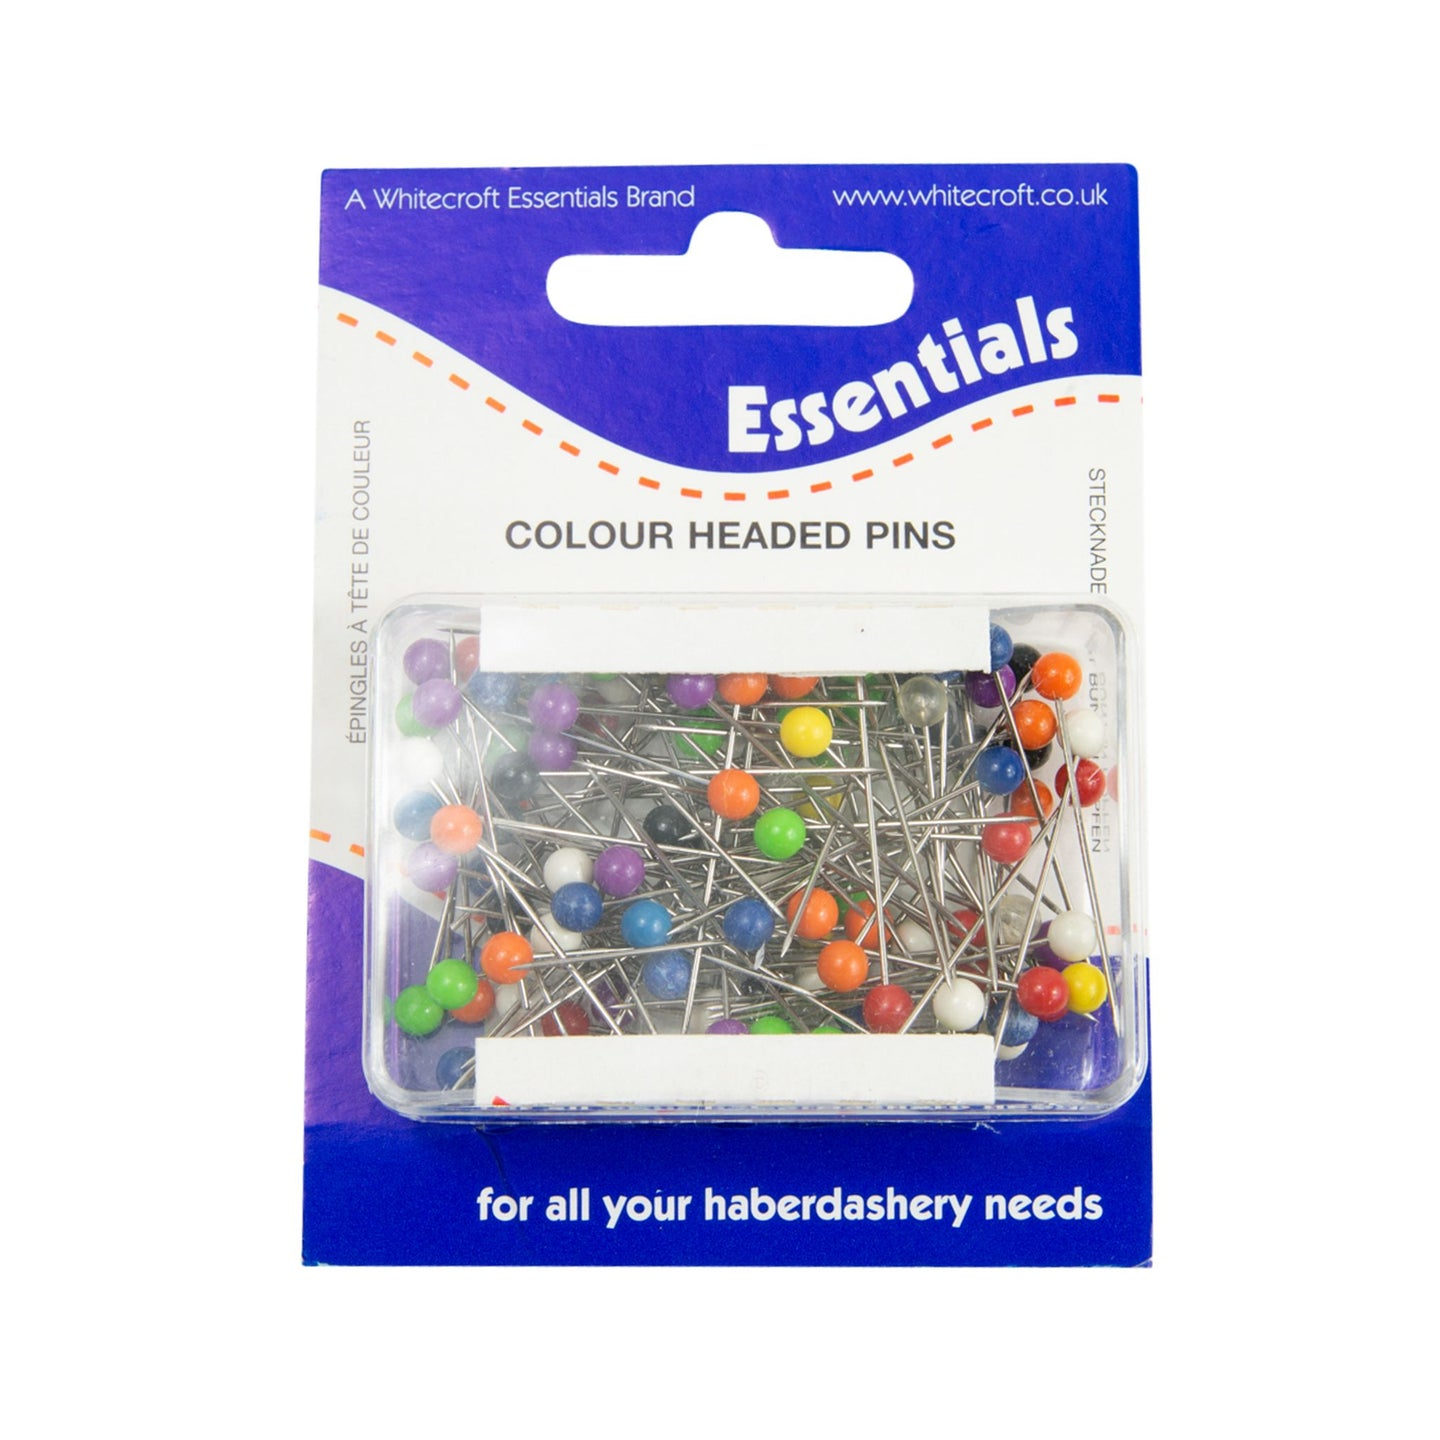 HB070 Coloured headed pins